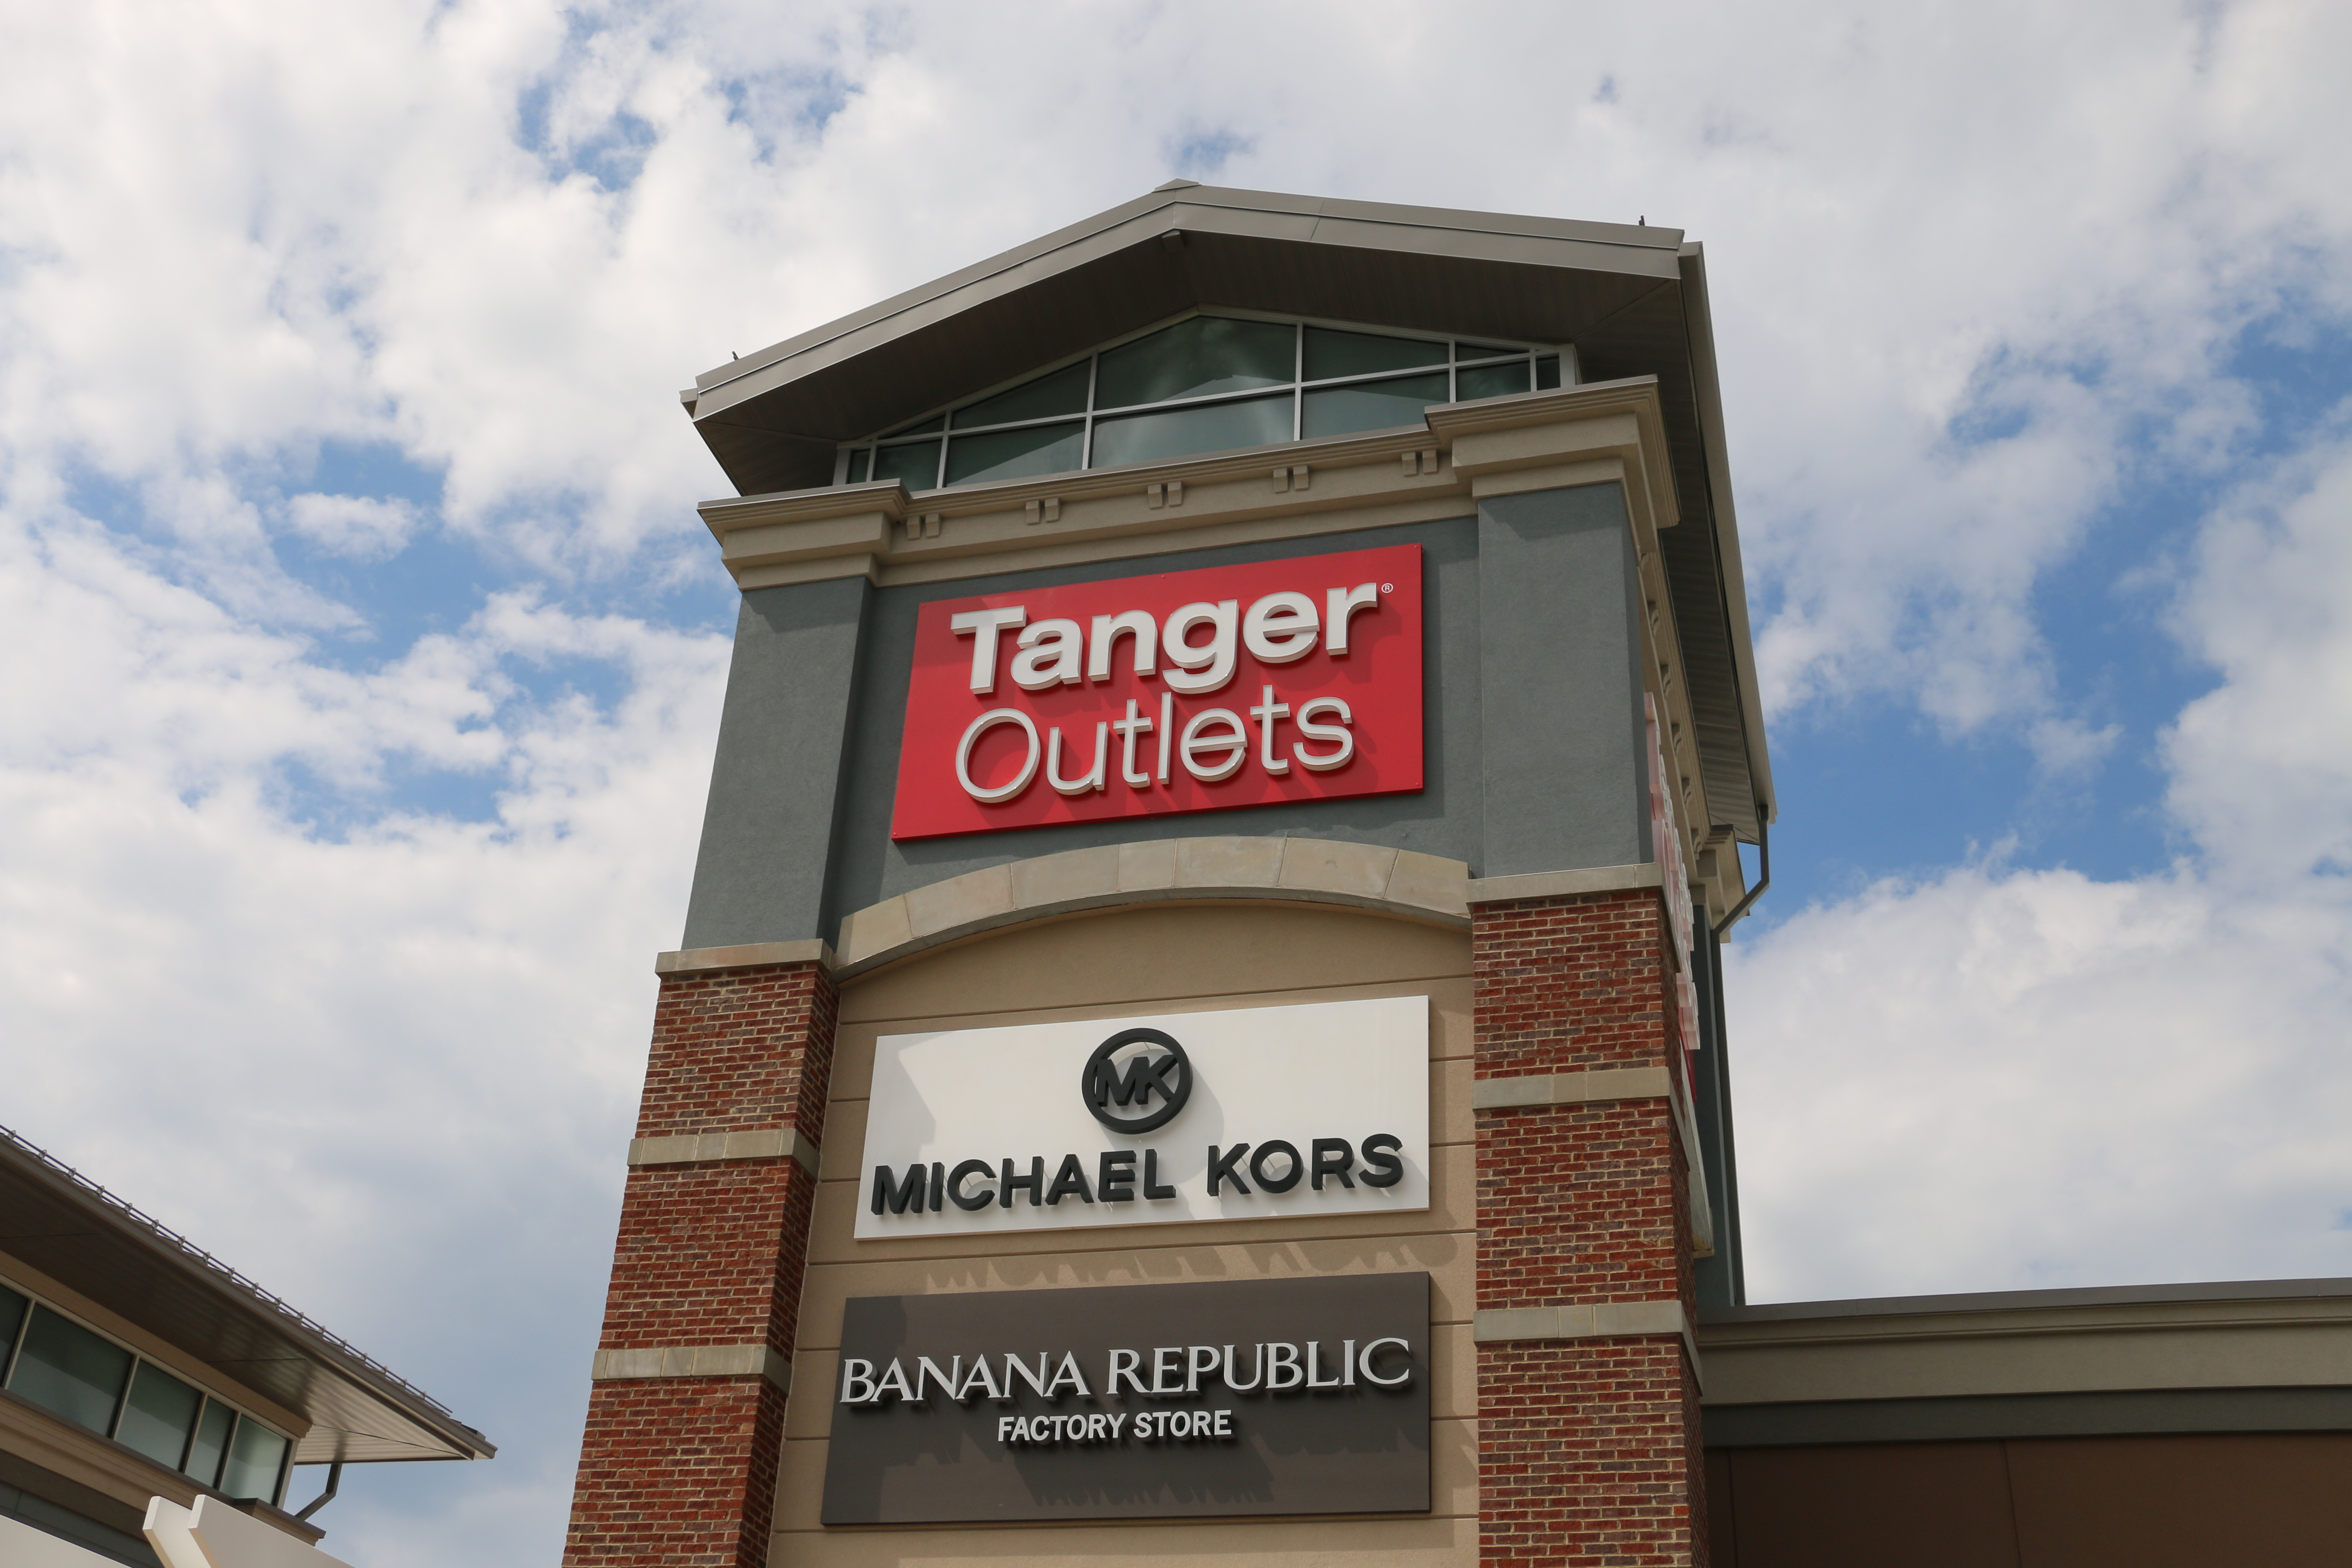 Download the Tanger App for i OS or Android Be the first to know Sign up for tips, trends, discount coupons, sales offers and special promotions at Tanger Outlets.